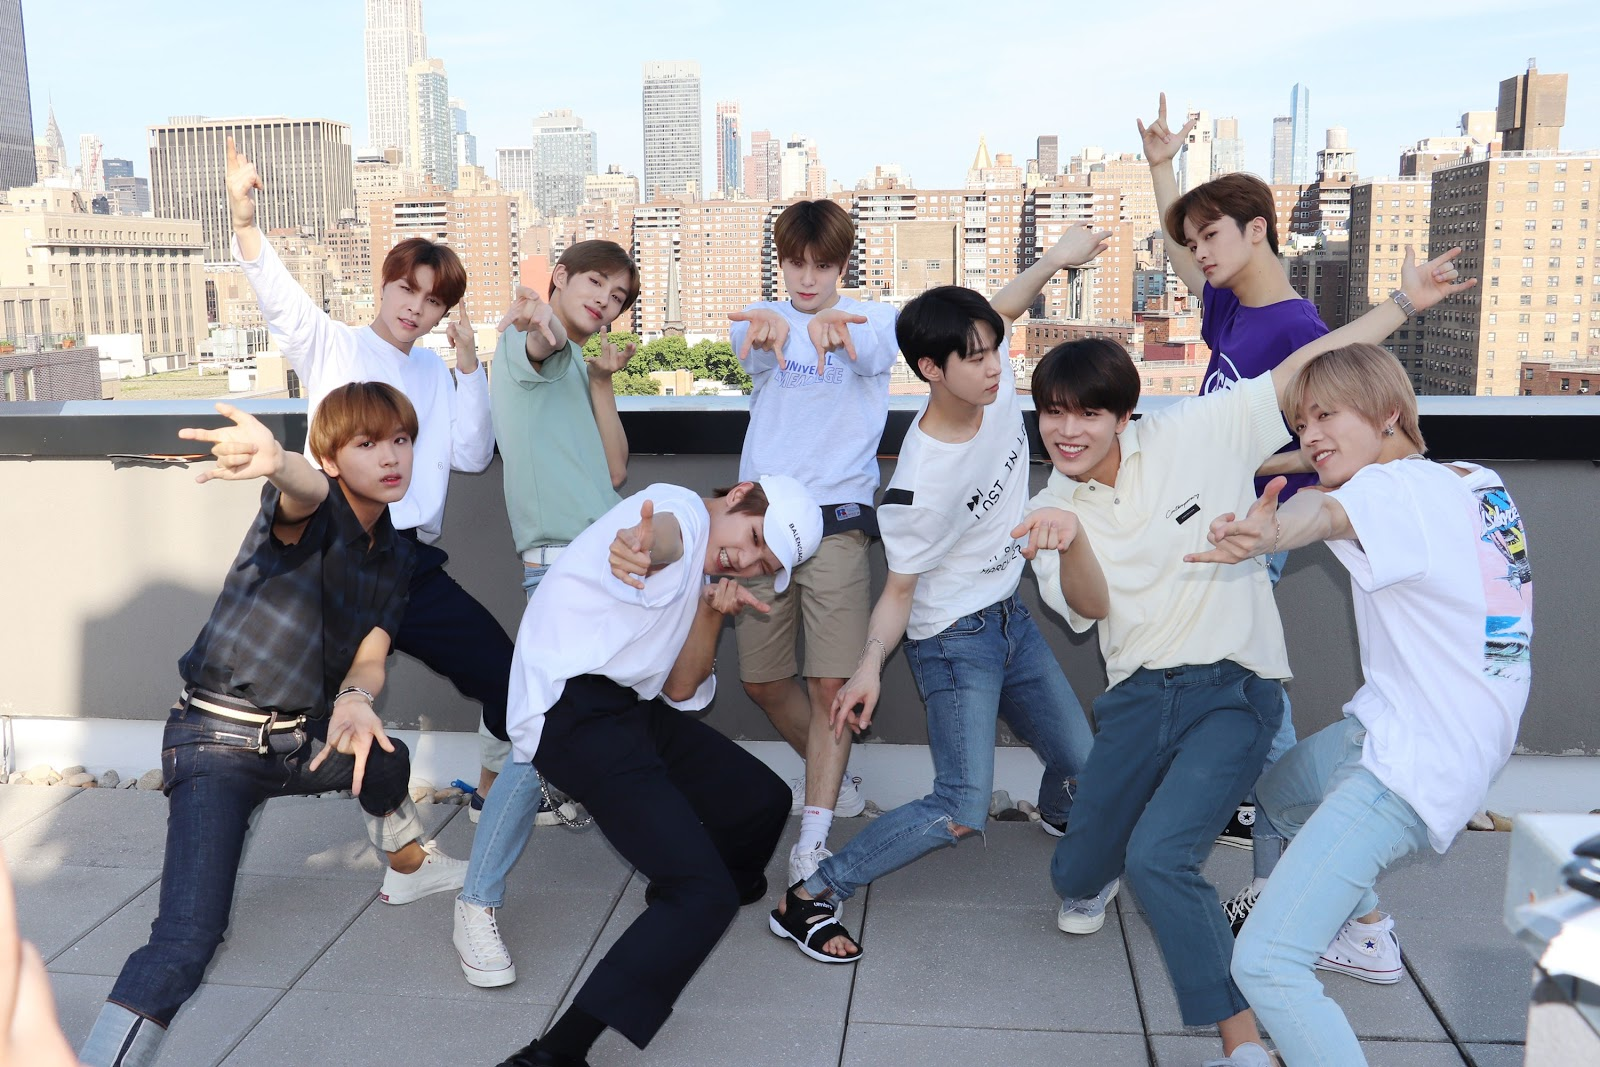 08-nct-127-in-nyc